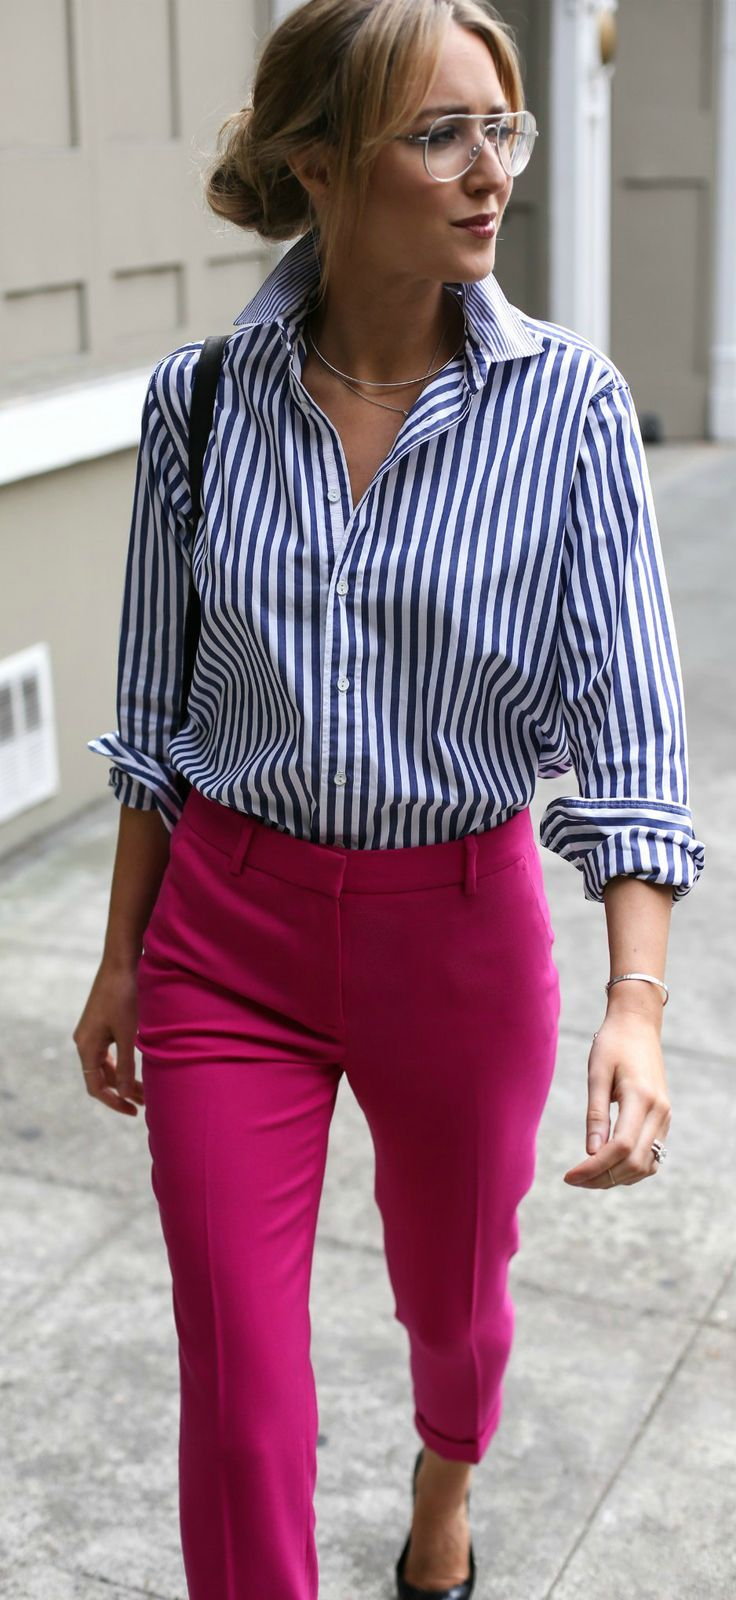 2ddbad299aa How to wear bright colors at the office with these fuchsia pink pants, navy  and white striped boyfriend shirt and classic black pumps!